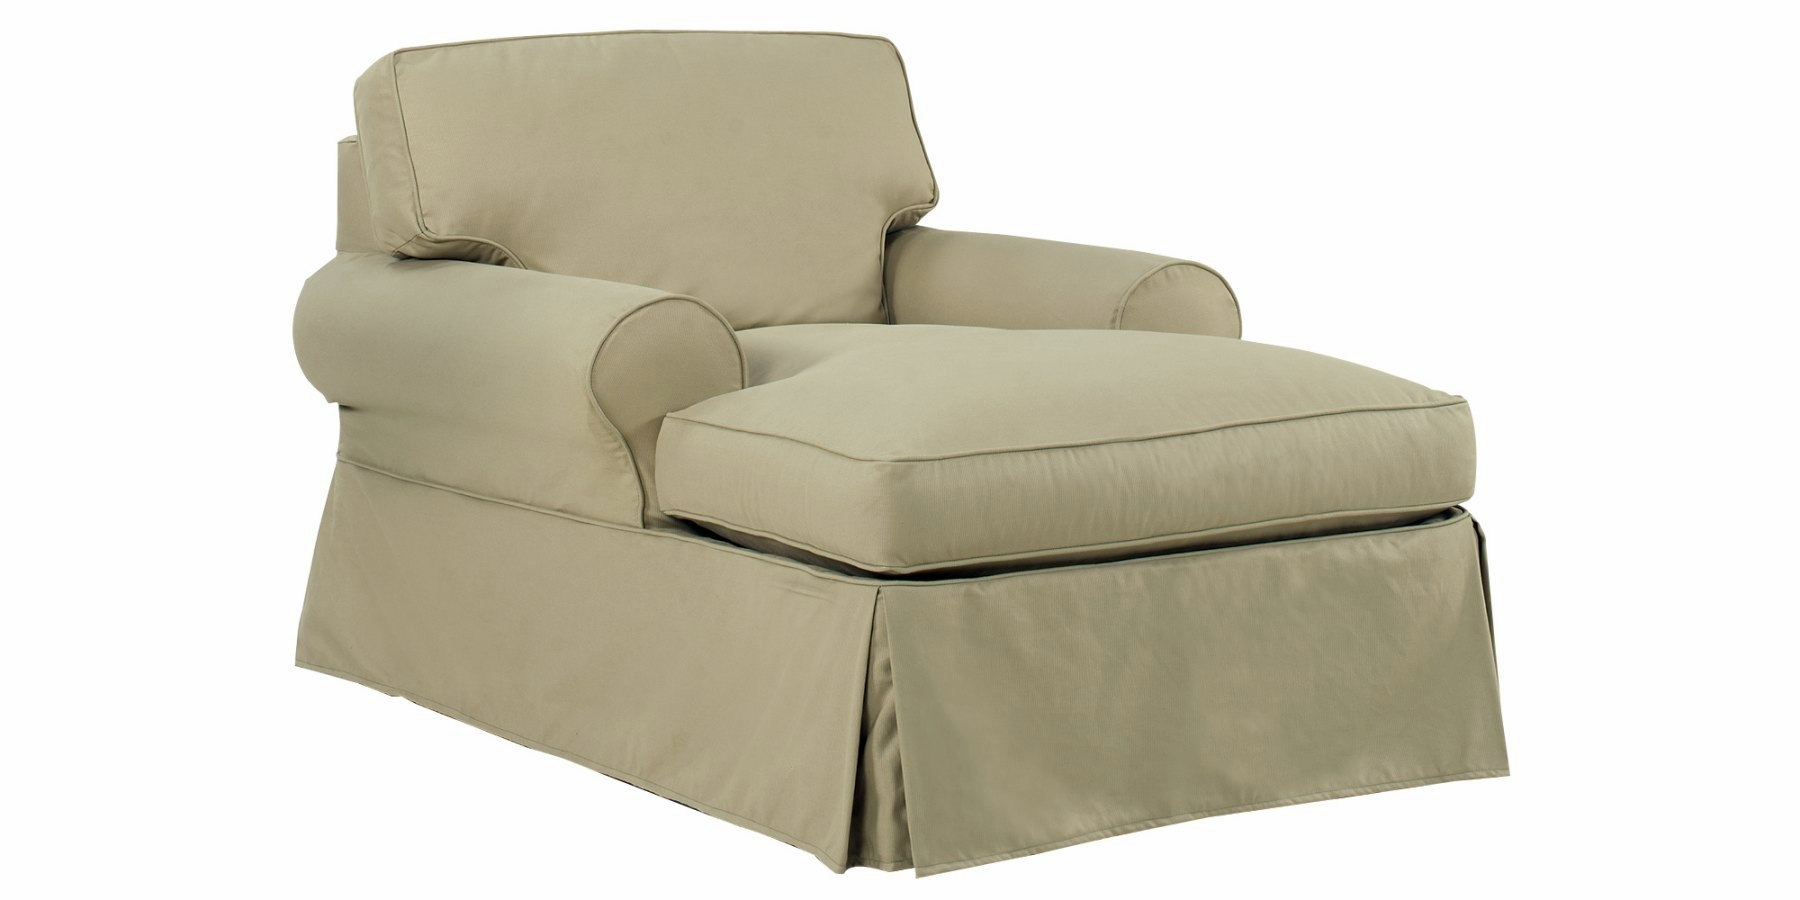 Chloe Slipcovered Chaise Lounge Chair  sc 1 st  Club Furniture : furniture chaise lounge - Sectionals, Sofas & Couches